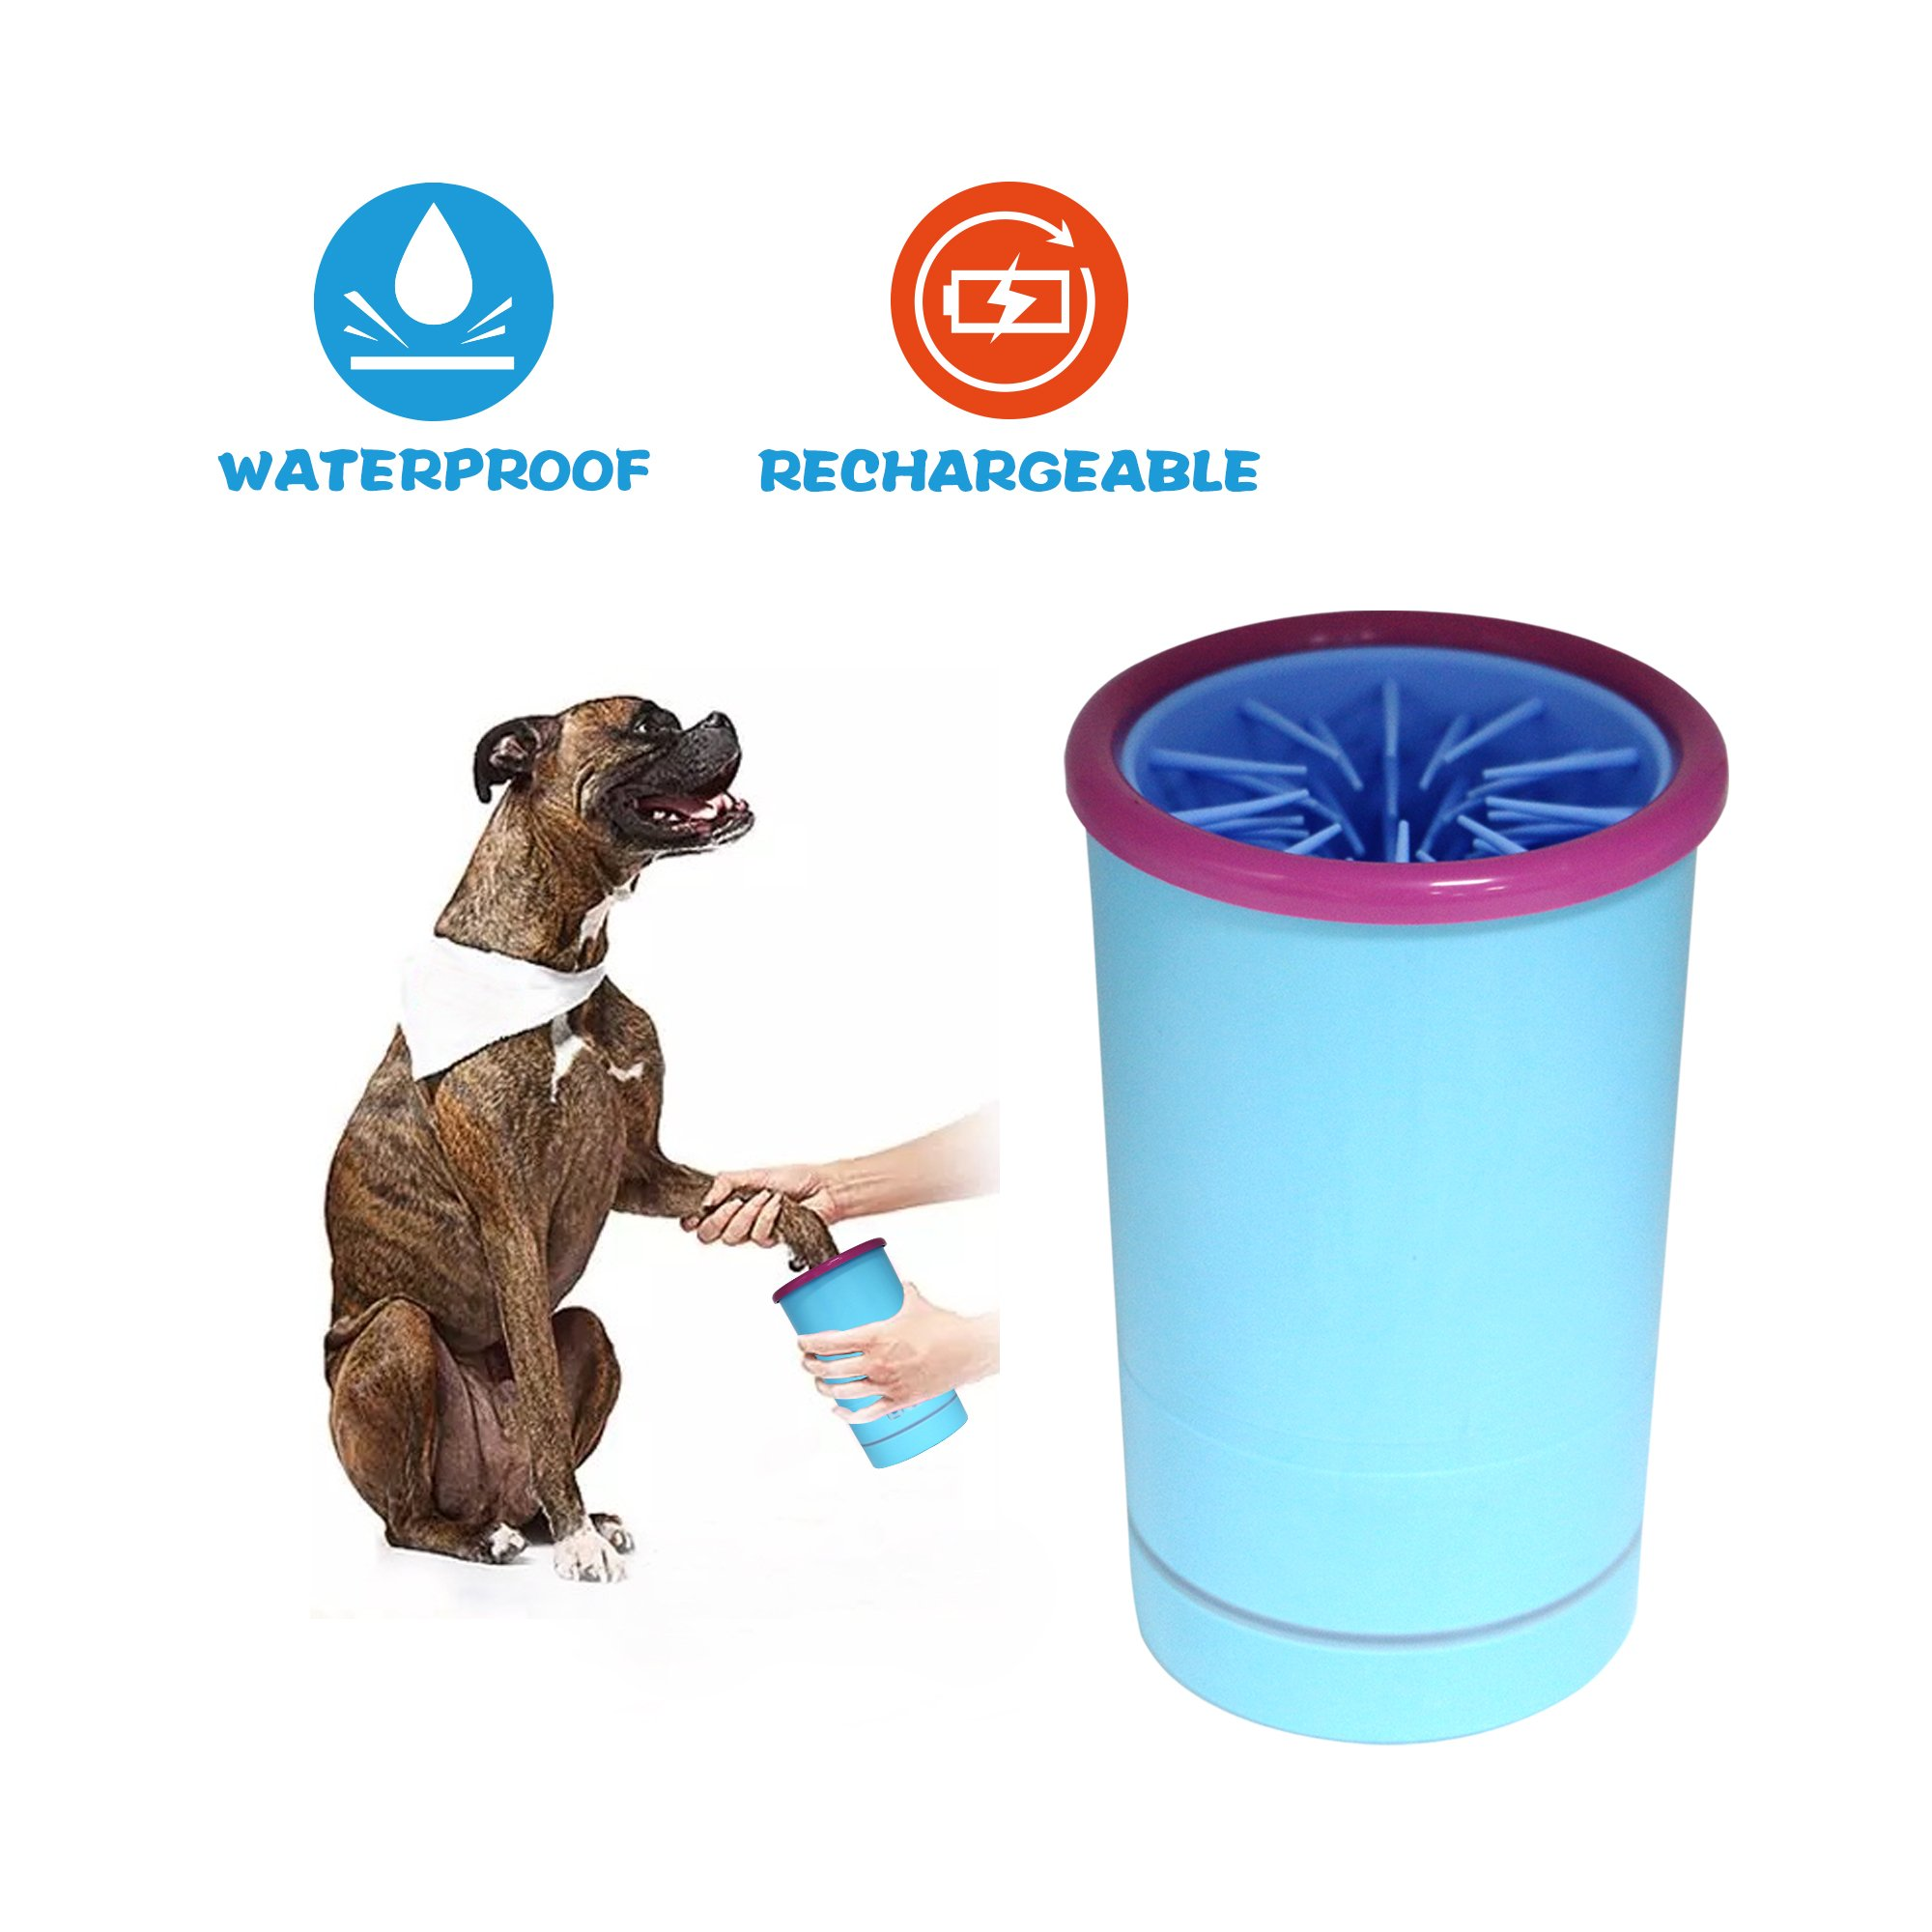 [2018 New Version] Automatic Feet Washing Cup, Dog Cat Paw Cleaner Pet Cleaning Brush Cup, Integral Waterproofing, 2000mAh USB AA Rechargeable Battery, Medium & Large Size, Blue (Size - L02)